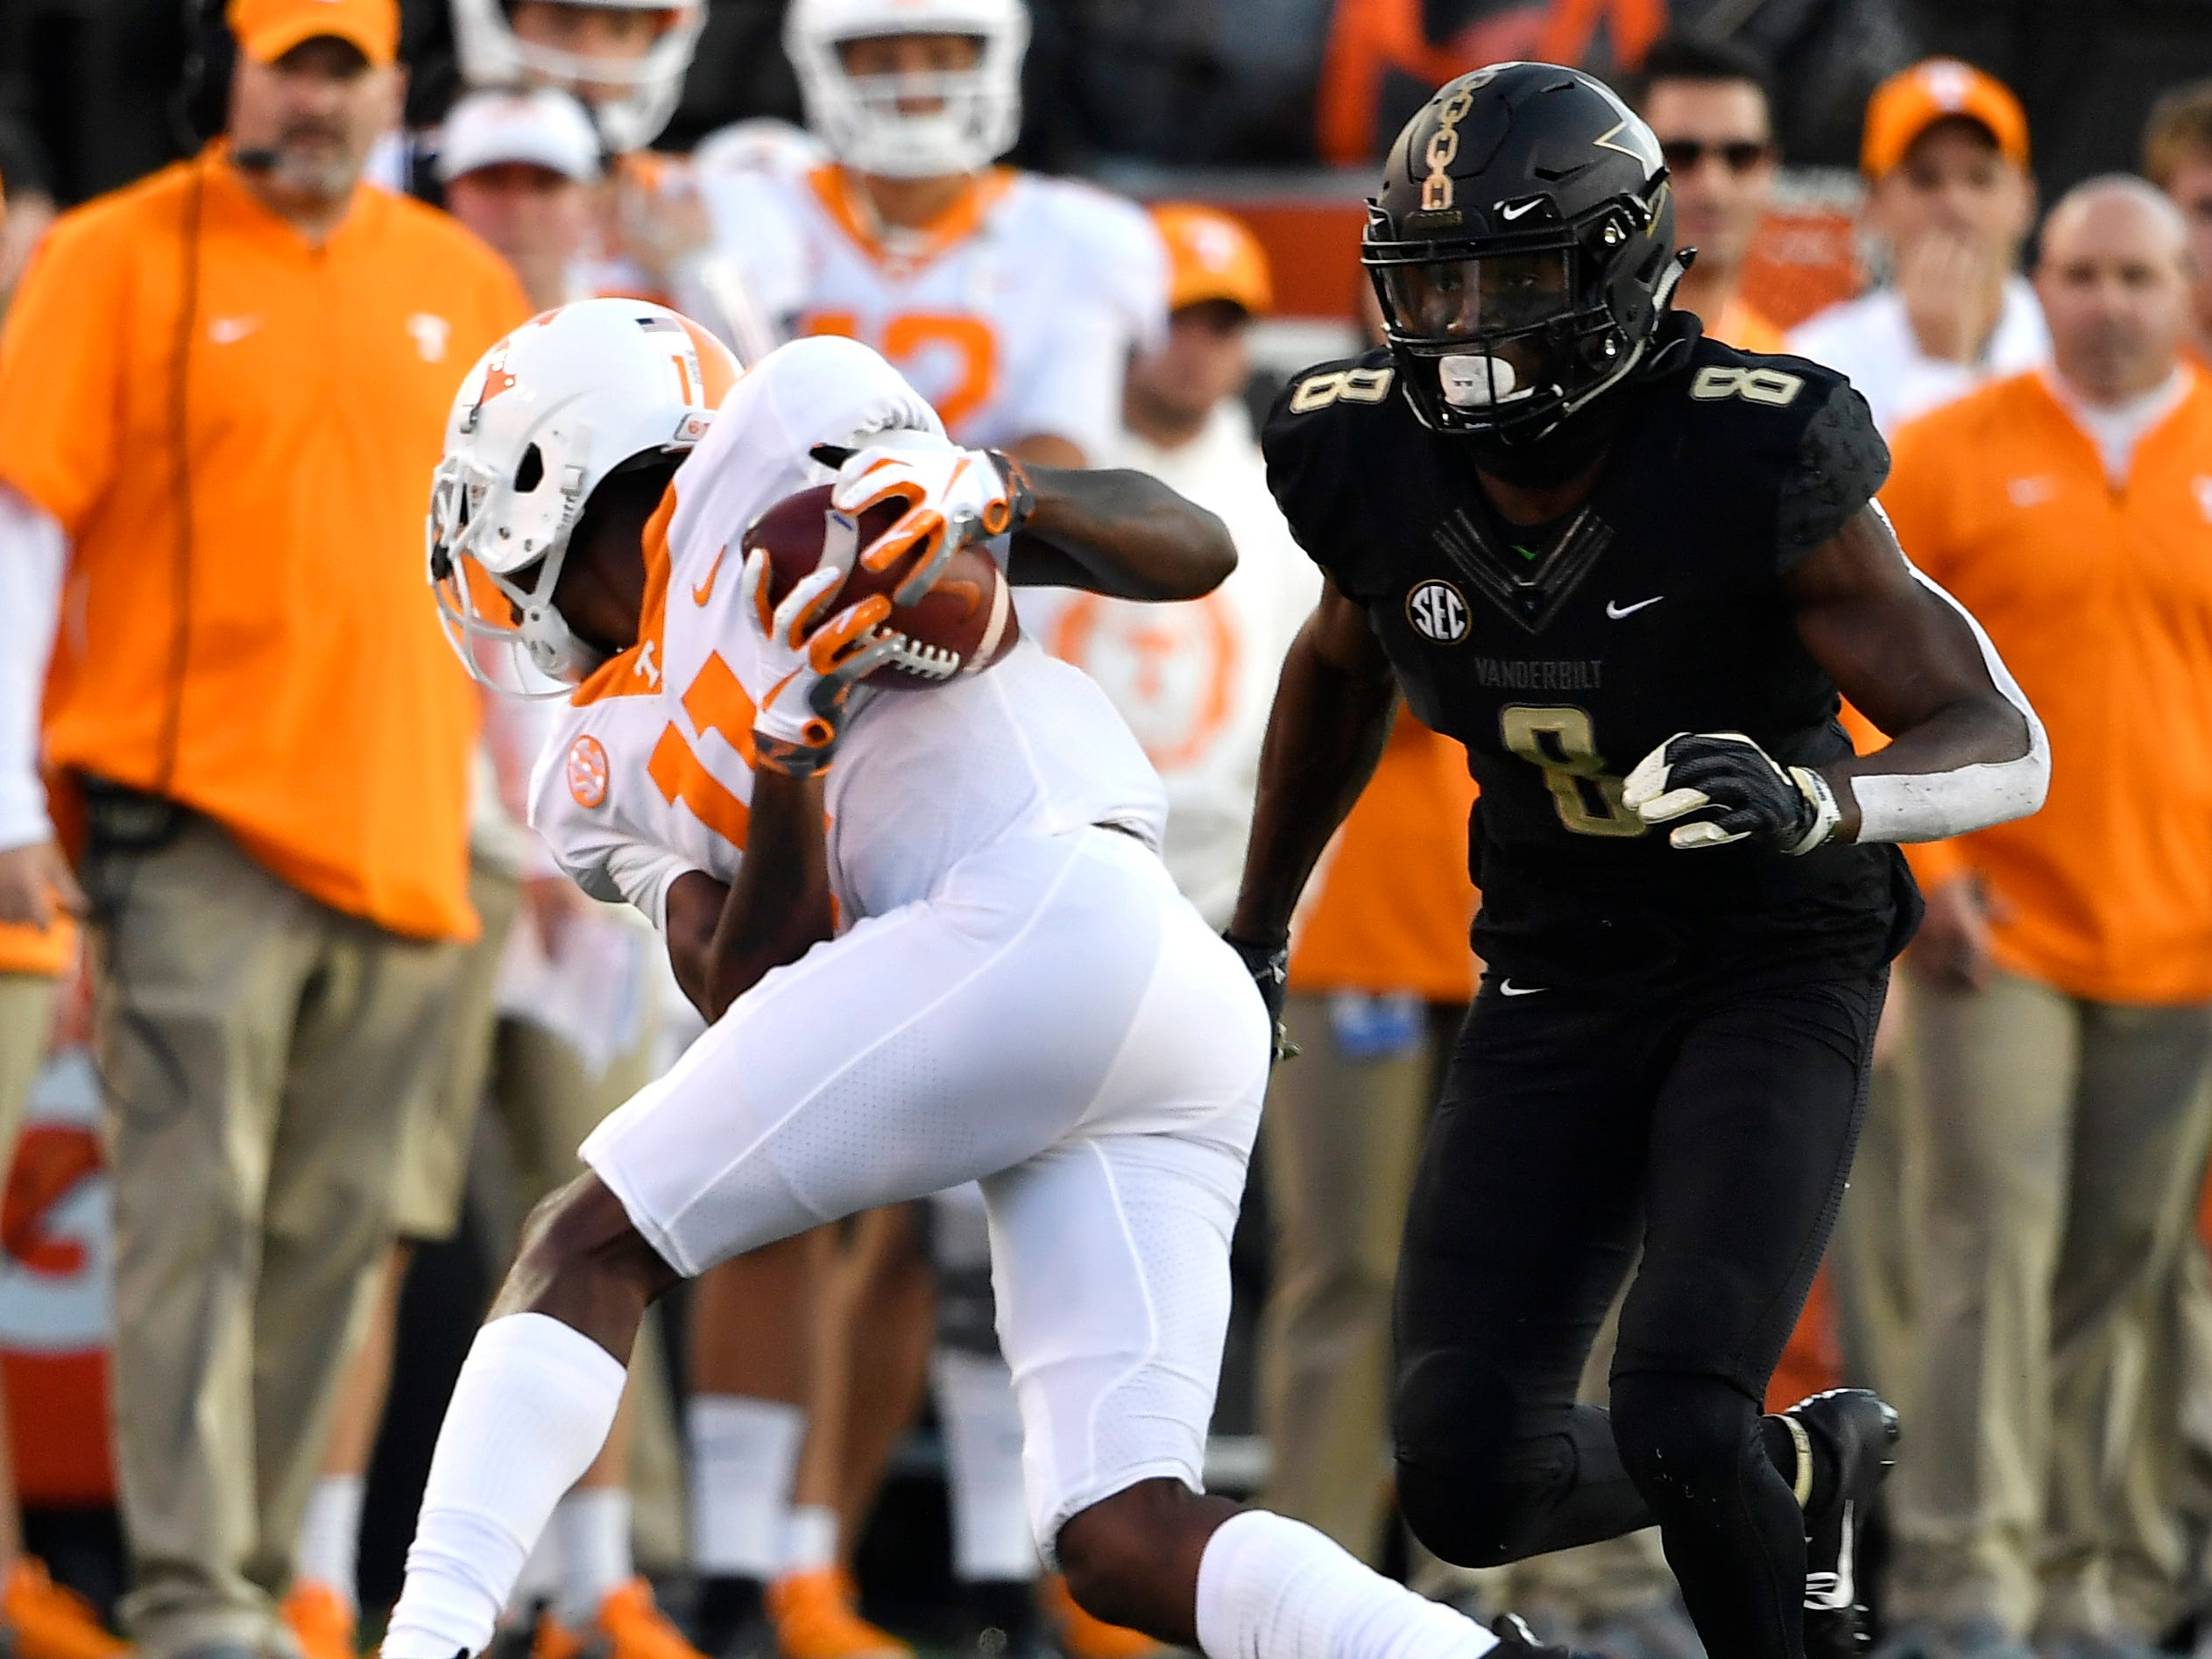 Tennessee wide receiver Jordan Murphy (11) pulls down a catch defended by Vanderbilt cornerback Joejuan Williams (8) in the first half at Vanderbilt Stadium Saturday, Nov. 24, 2018, in Nashville, Tenn.